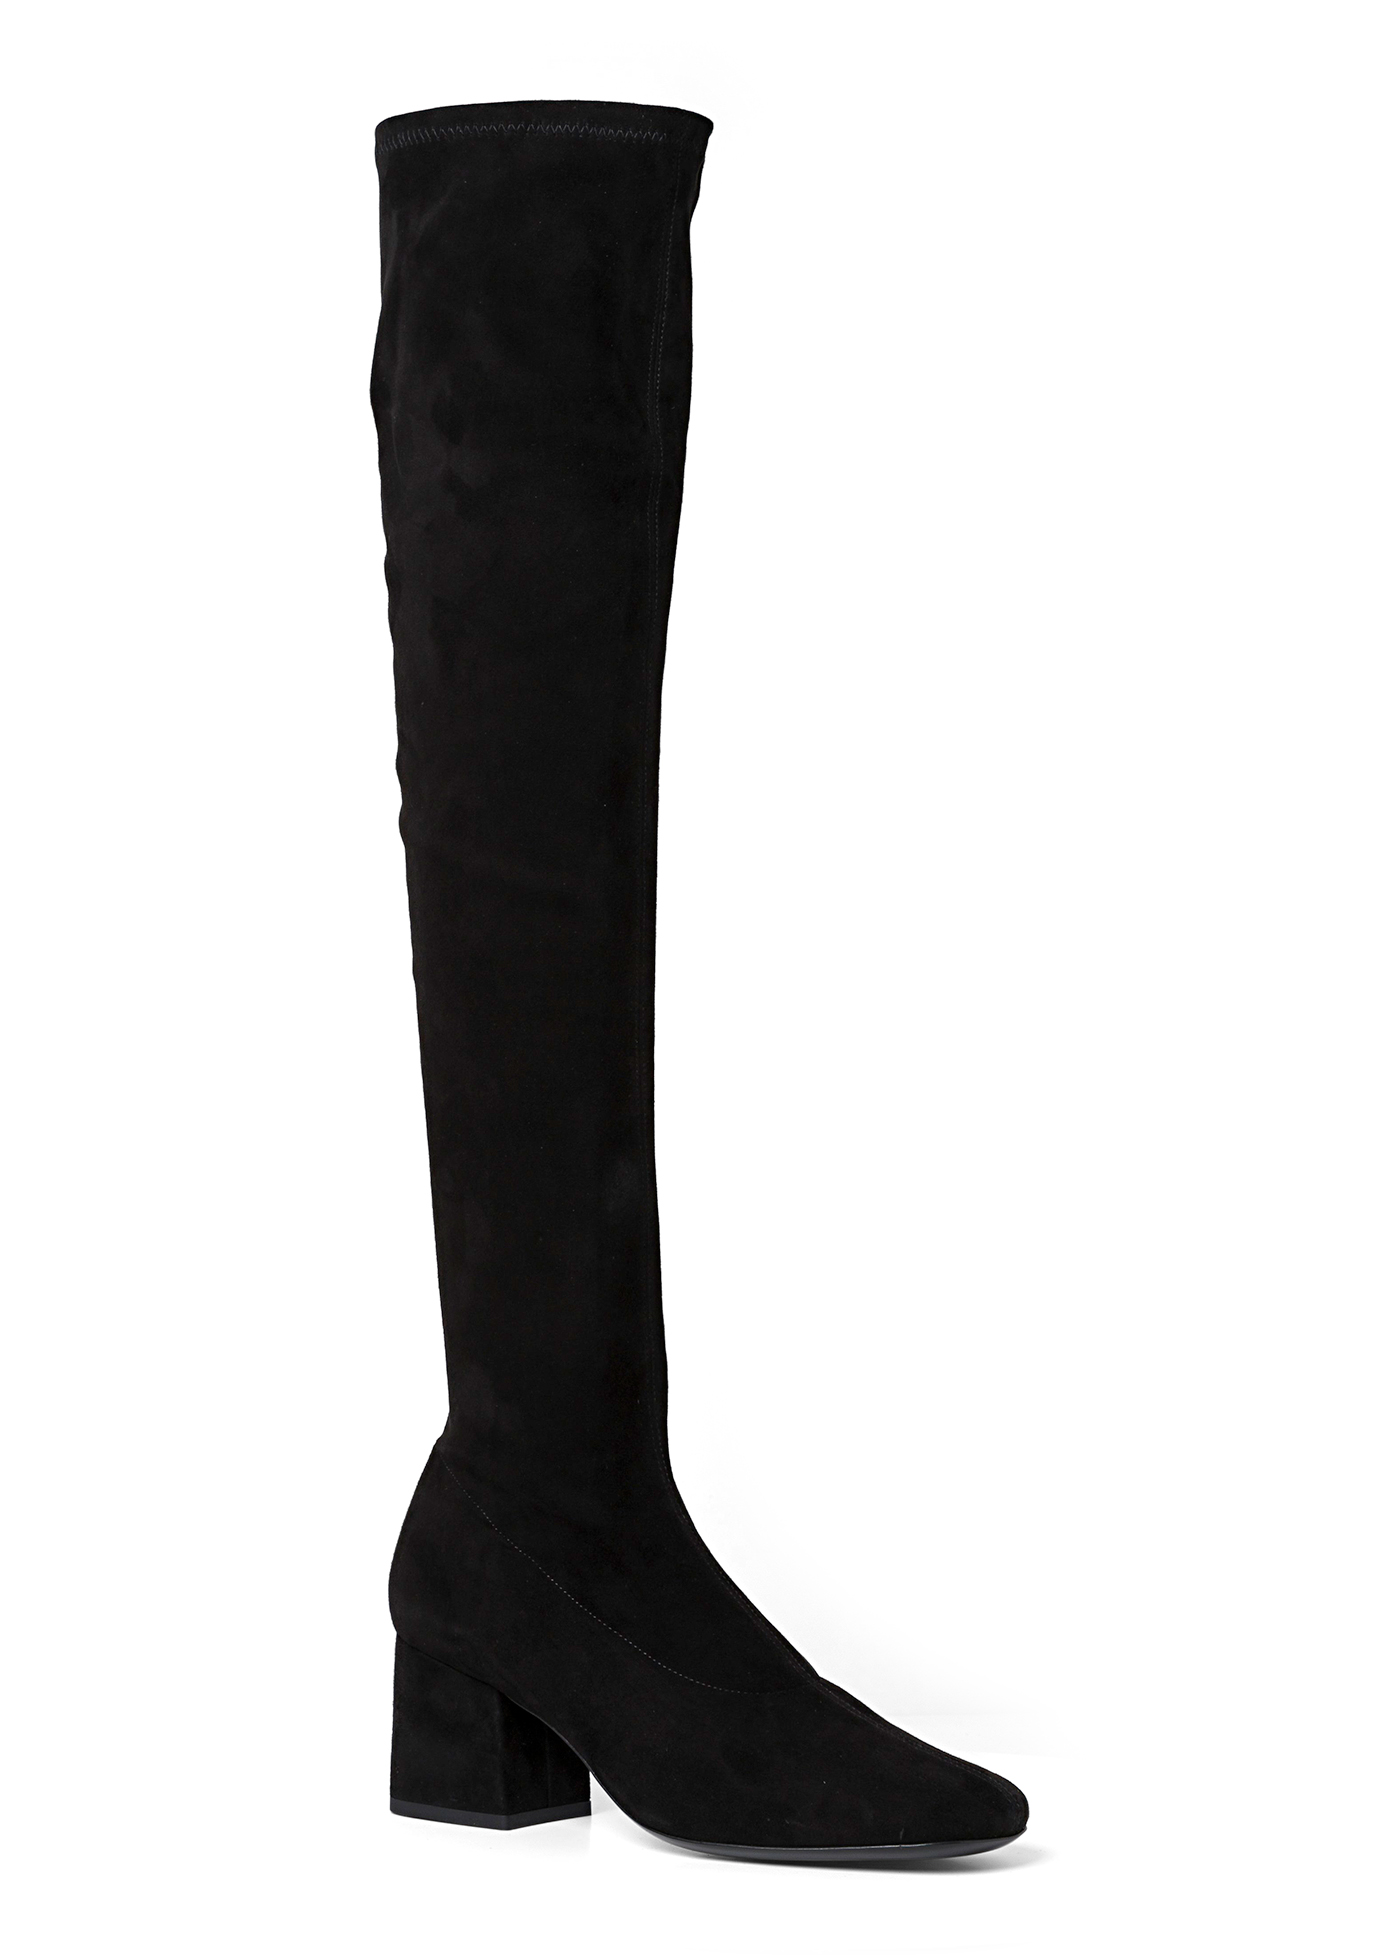 CARLOS 42 BLACK STRETCH SUEDE LEATHER image number 1